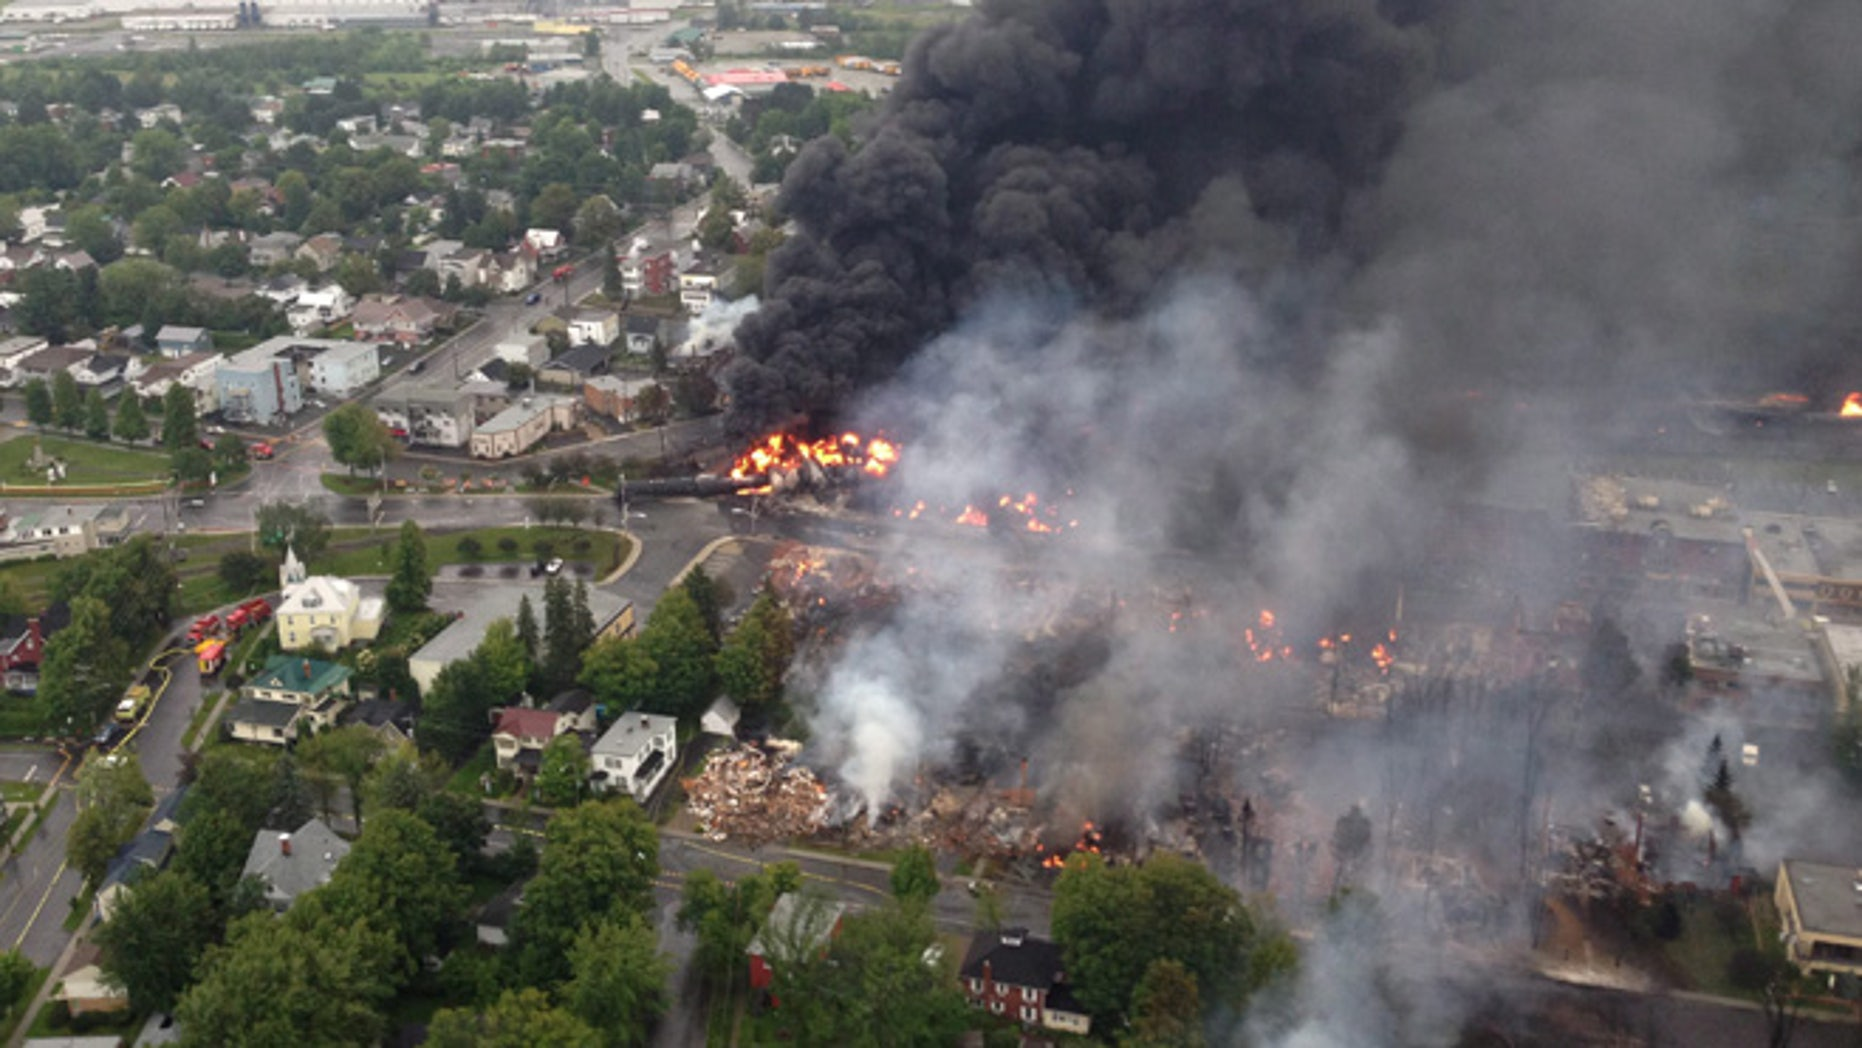 July 6, 2013: This aerial photo shows a fire in the town of Lac-Megantic as seen from a Sûreté du Québec helicopter following a train derailment that sparked several explosions in Lac Megantic, Quebec.